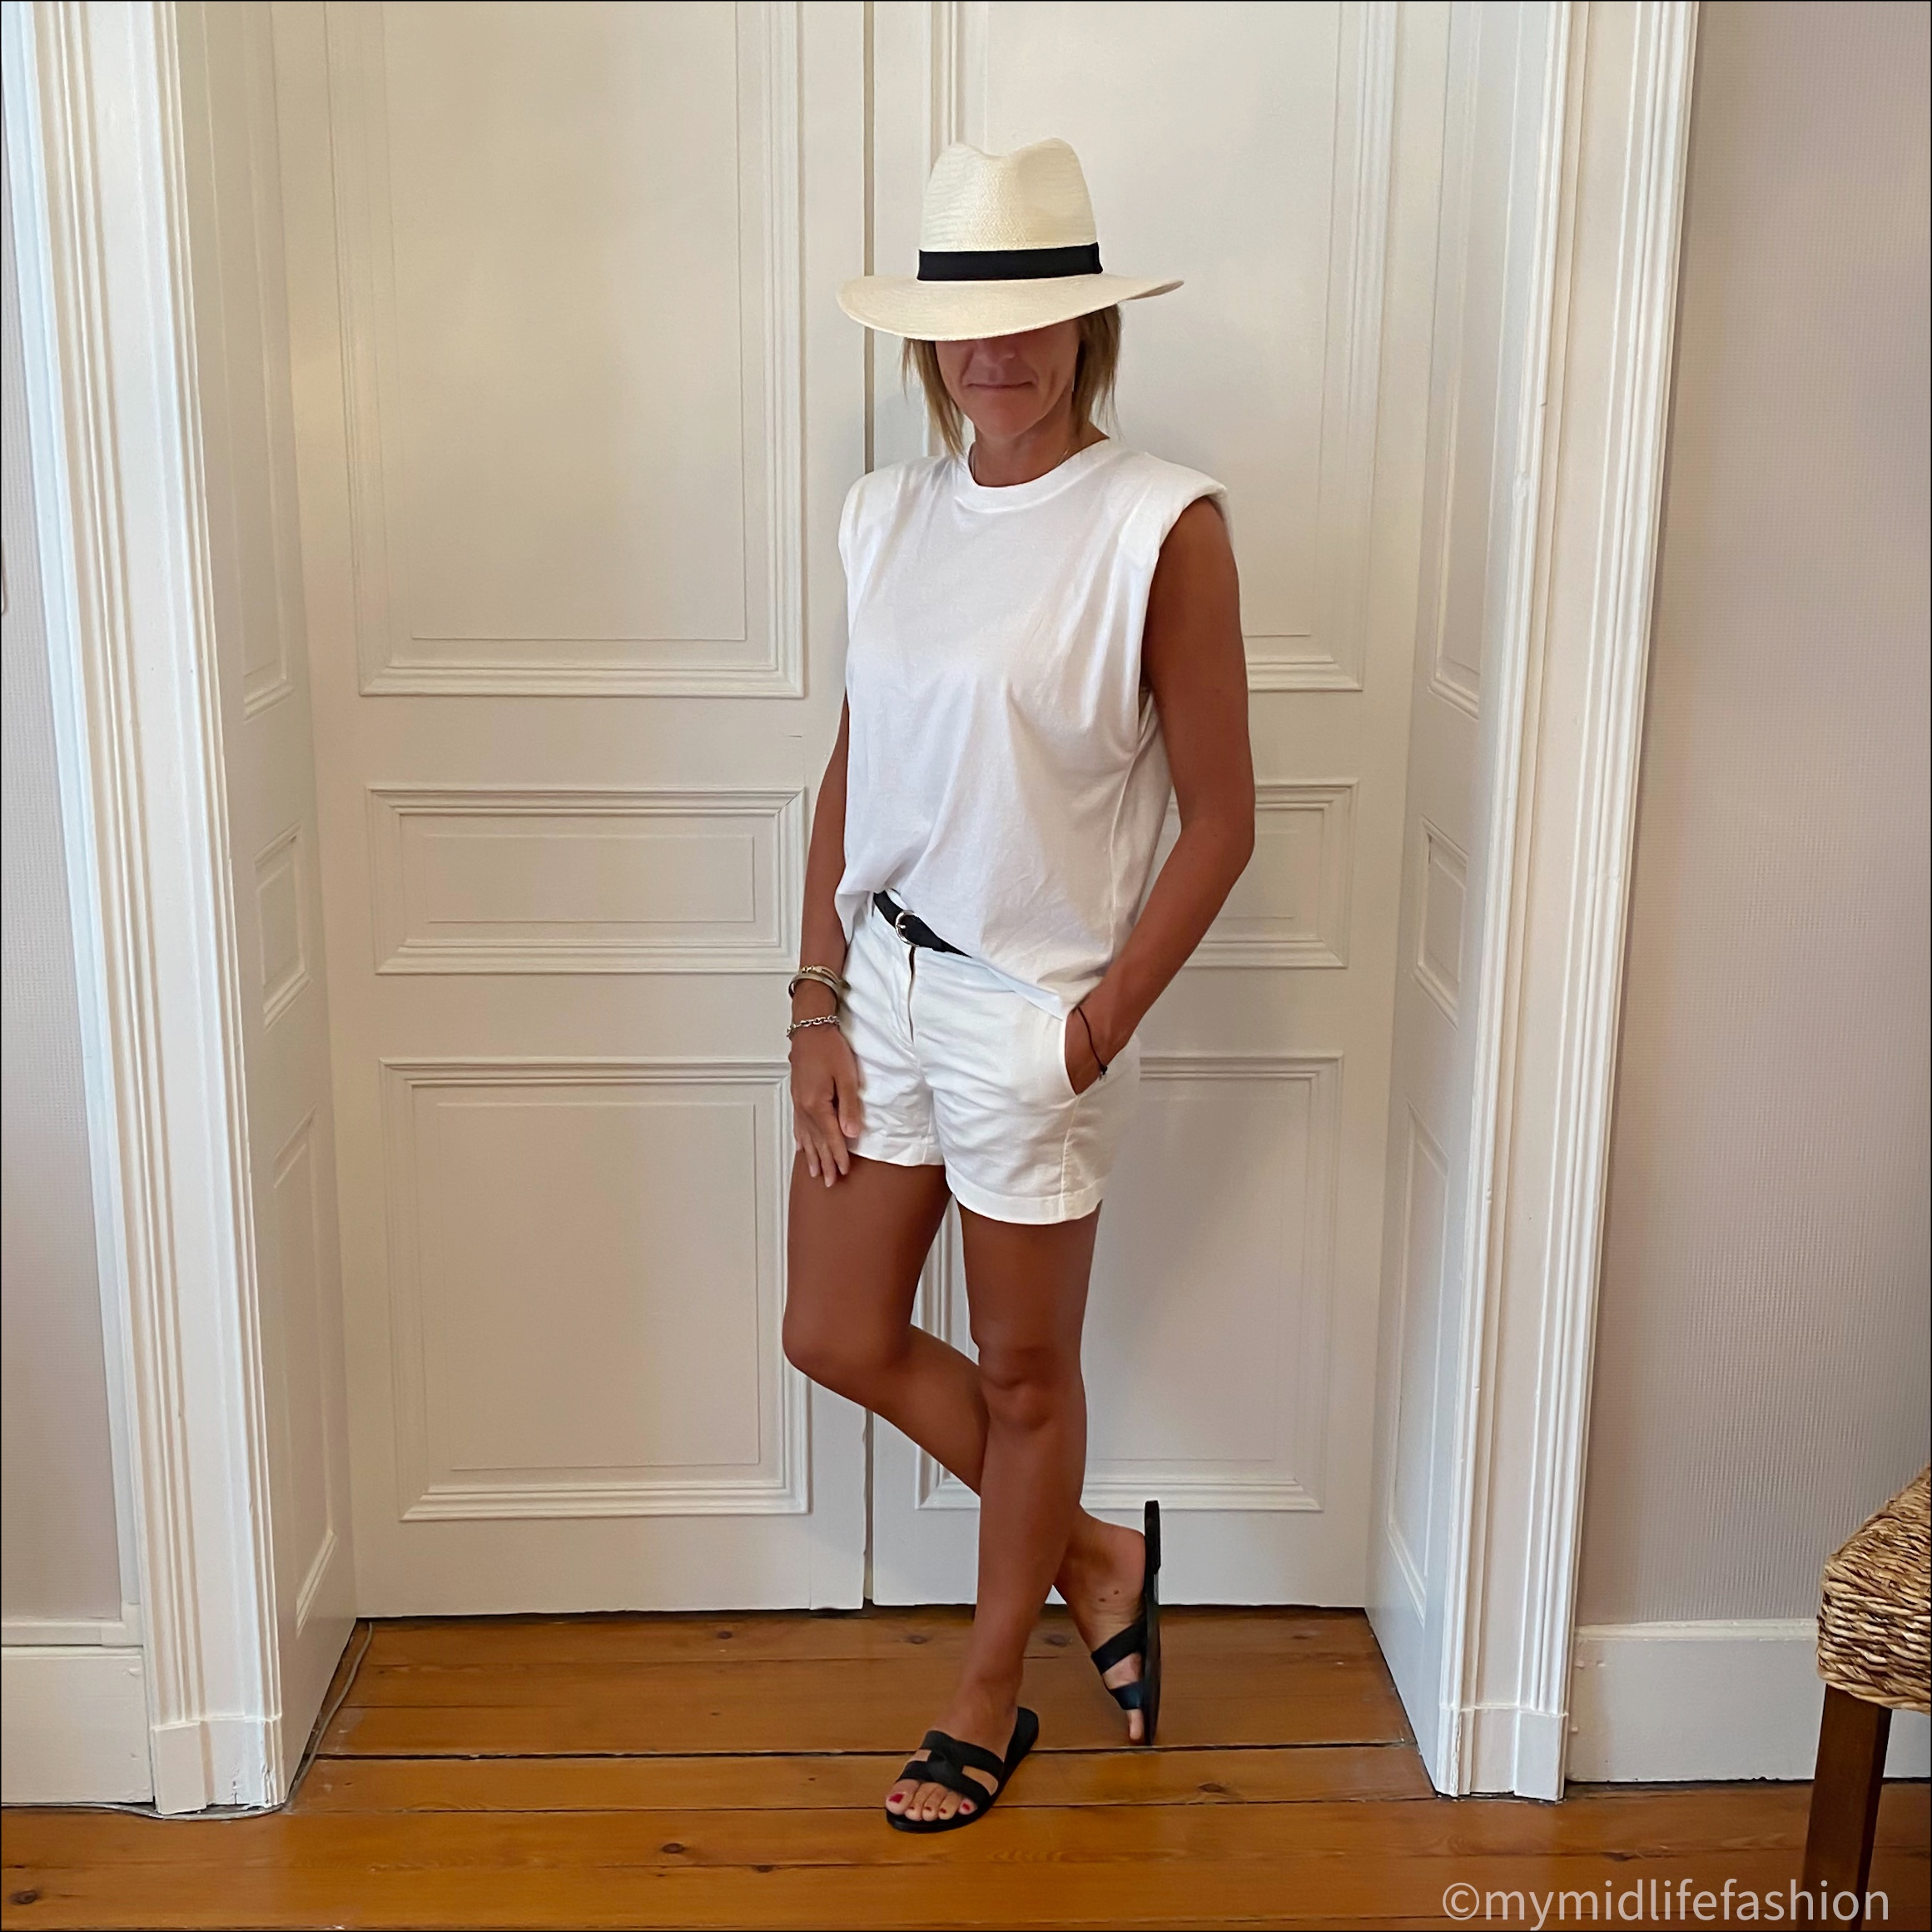 my midlife fashion, zara Panama hat, zara t shirt with pads, Isabel Marant leather studded belt, j crew chino 4 inch shorts, Ancient Greek desmos leather slides